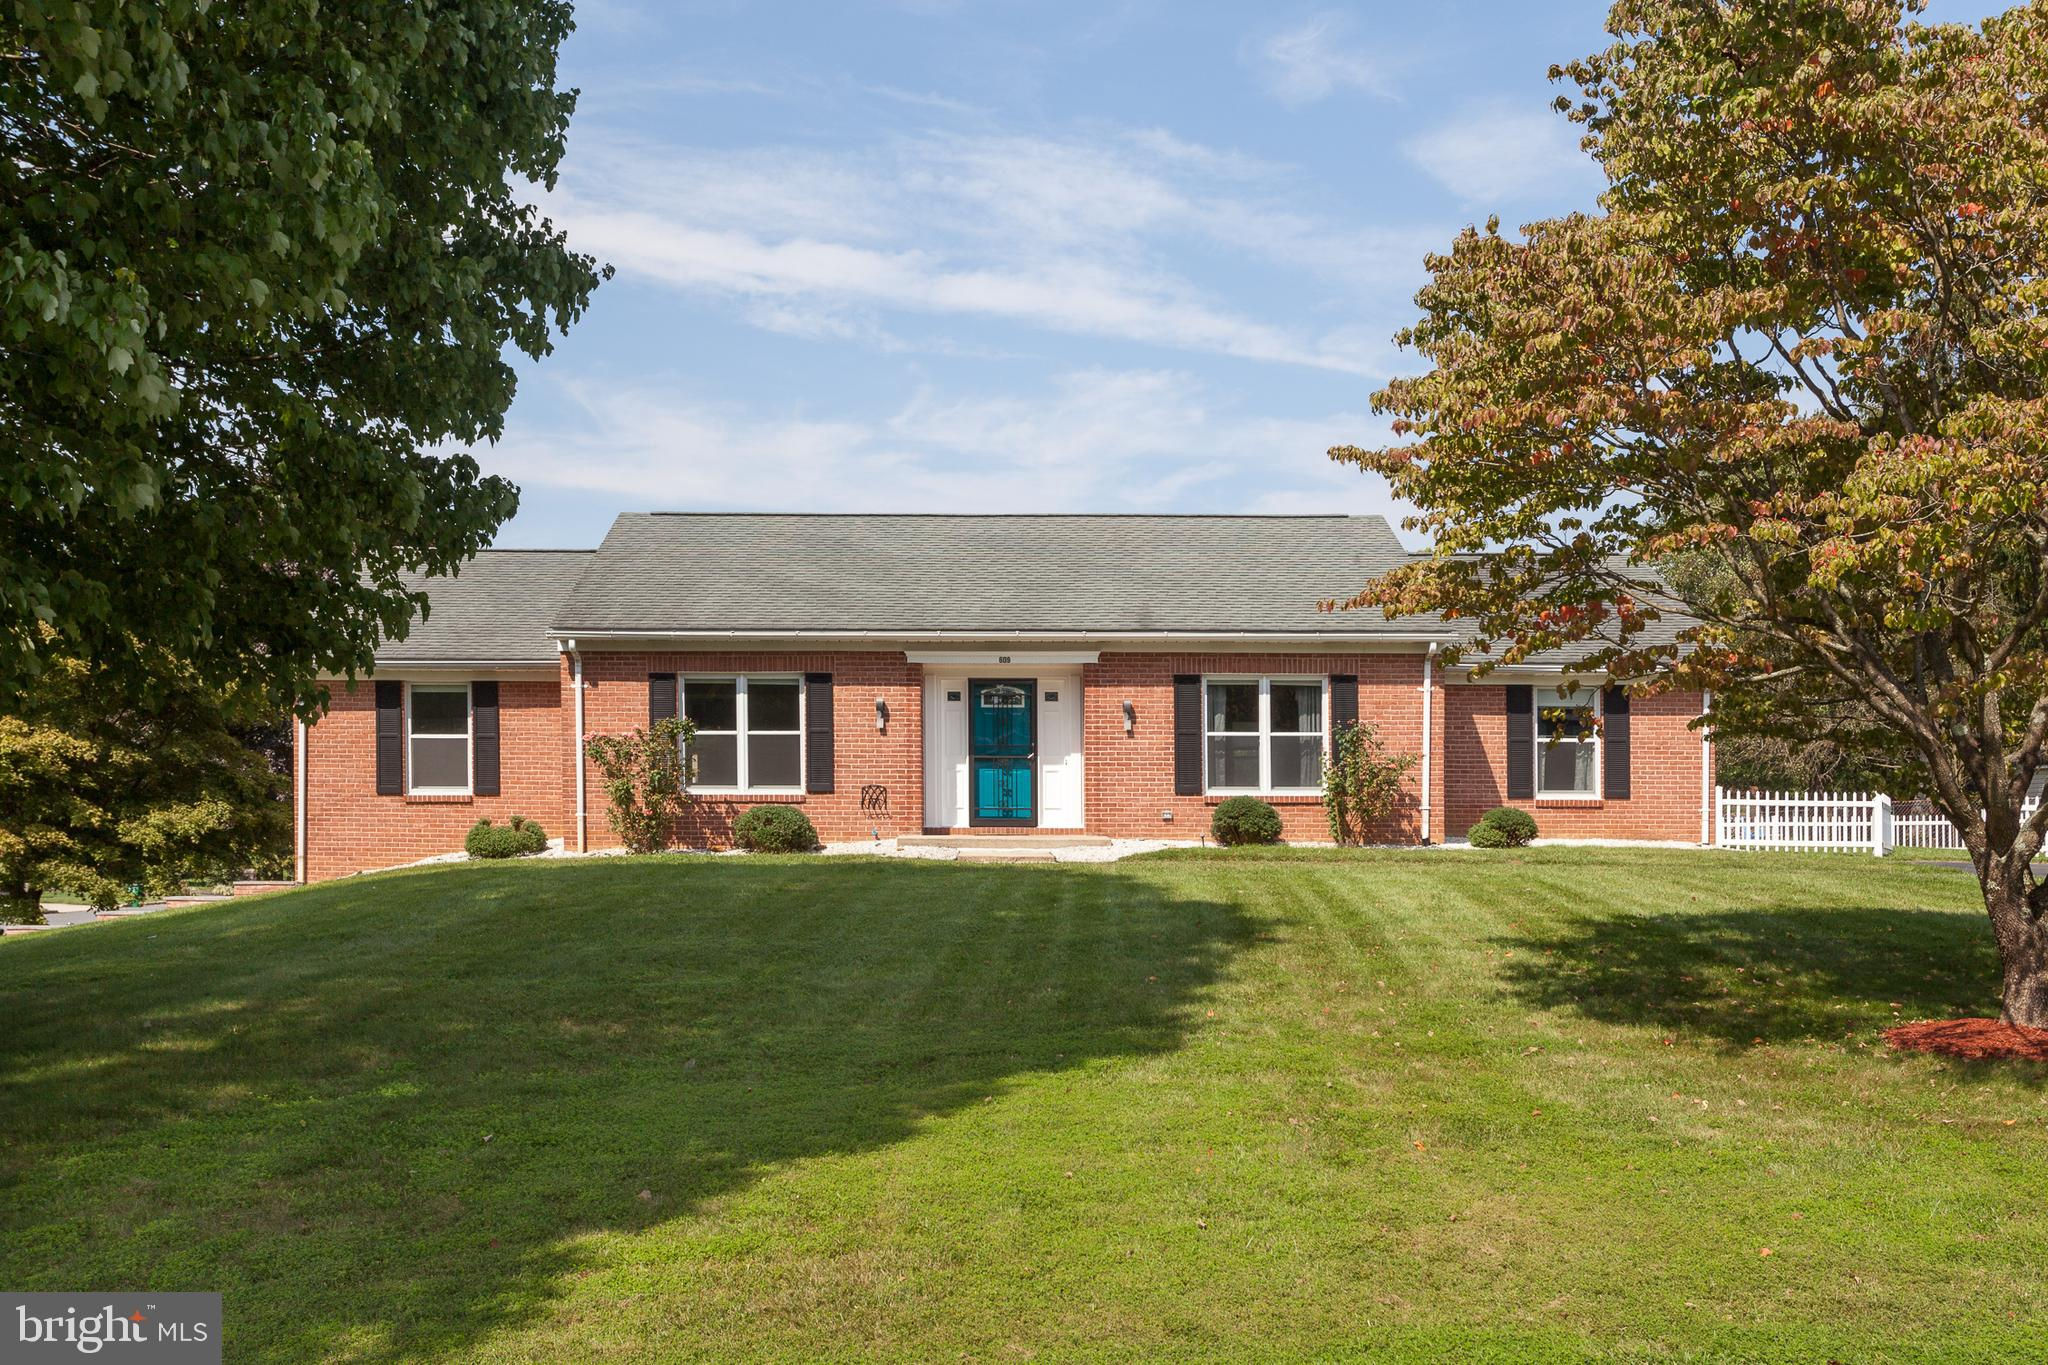 BEAUTIFUL..RENOVATED BRICK RANCHER HOME LOCATED ON A SPACIOUS CORNER LOT. INVITING CHEF'S KITCHEN BO